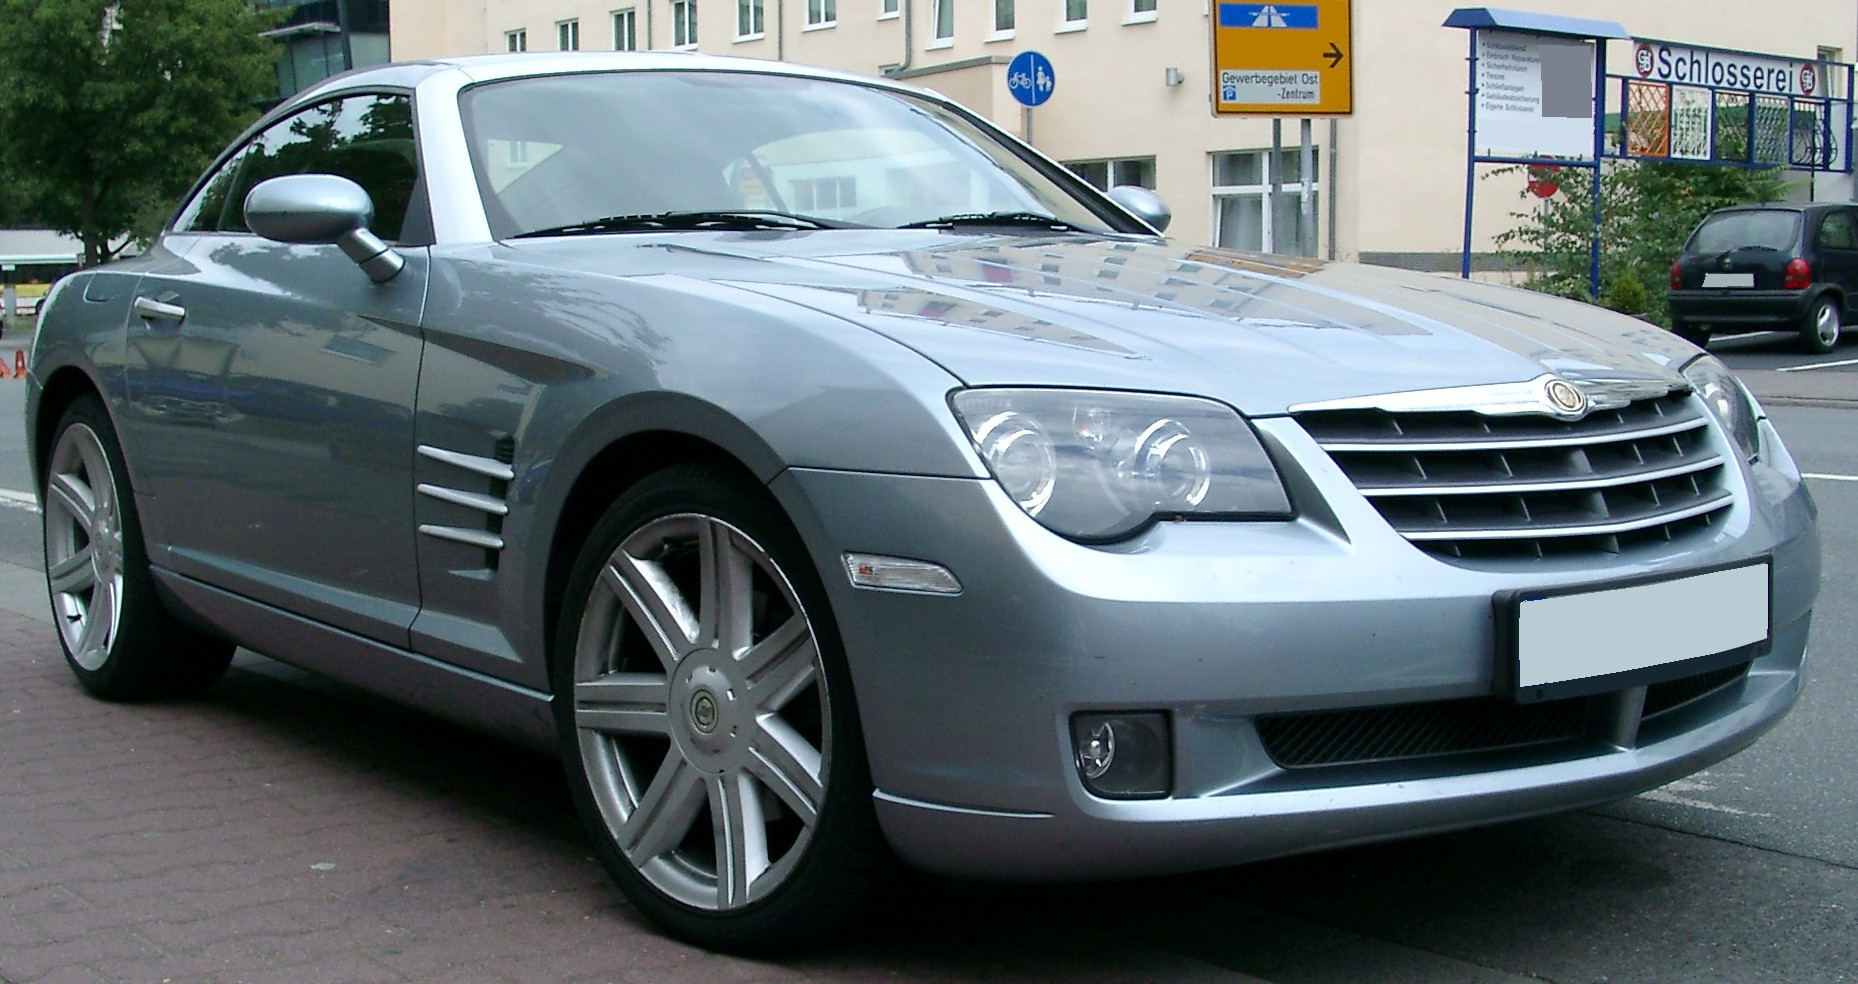 File Chrysler Crossfire Front 20070831 Jpg Wikimedia Commons